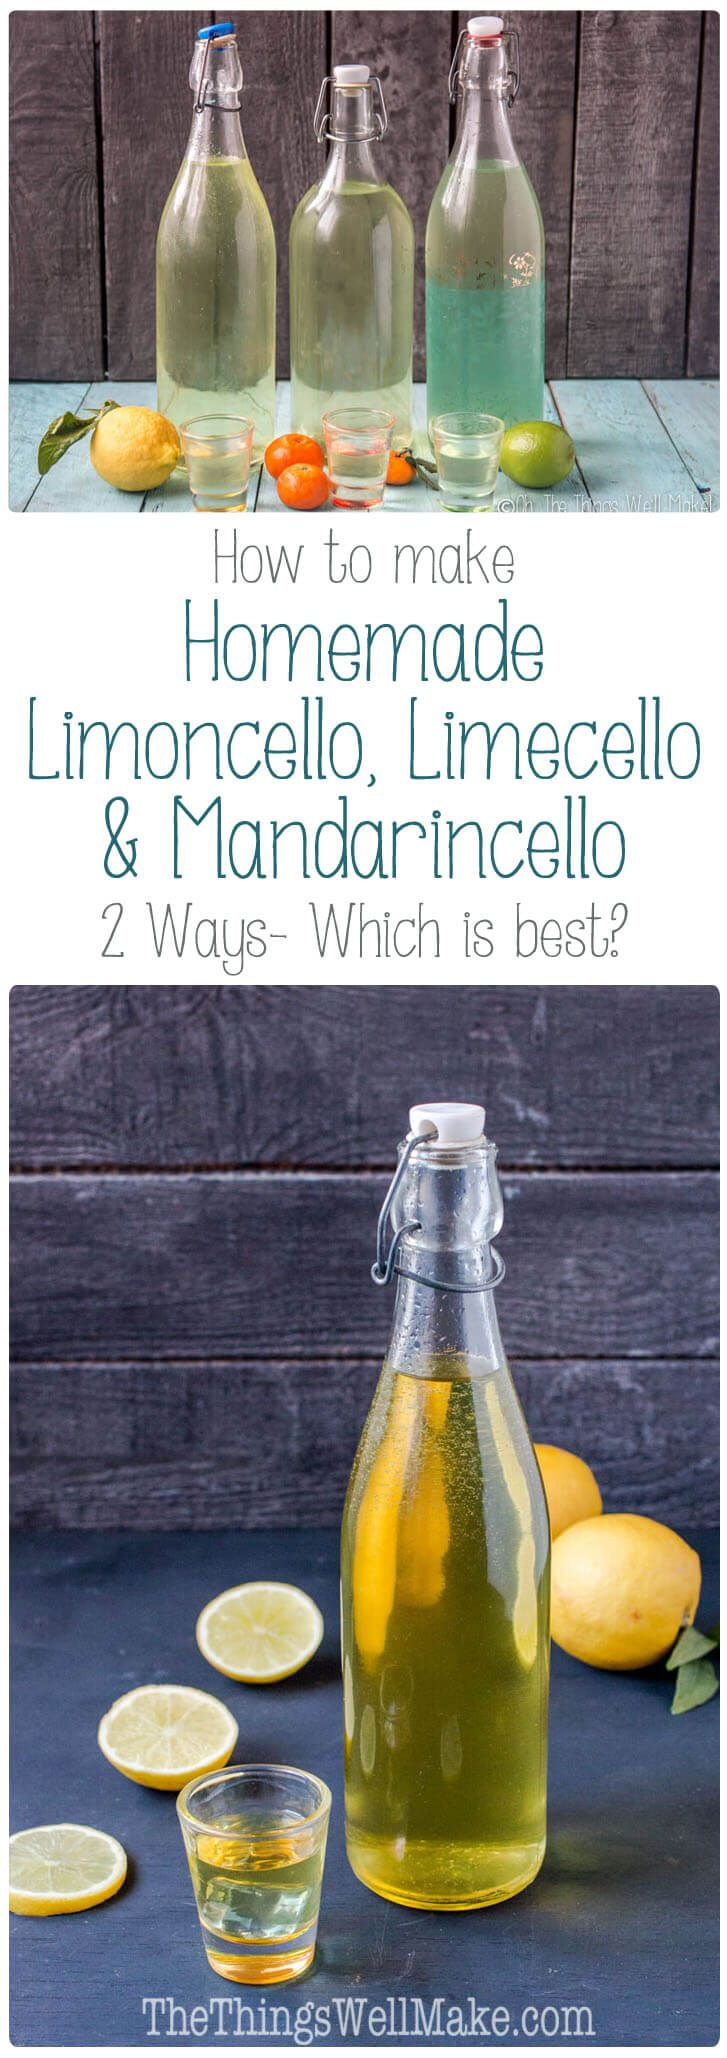 There are several ways to make a homemade limoncello, limecello, or mandarinecello. I put several methods to the taste test. Which do you think won?